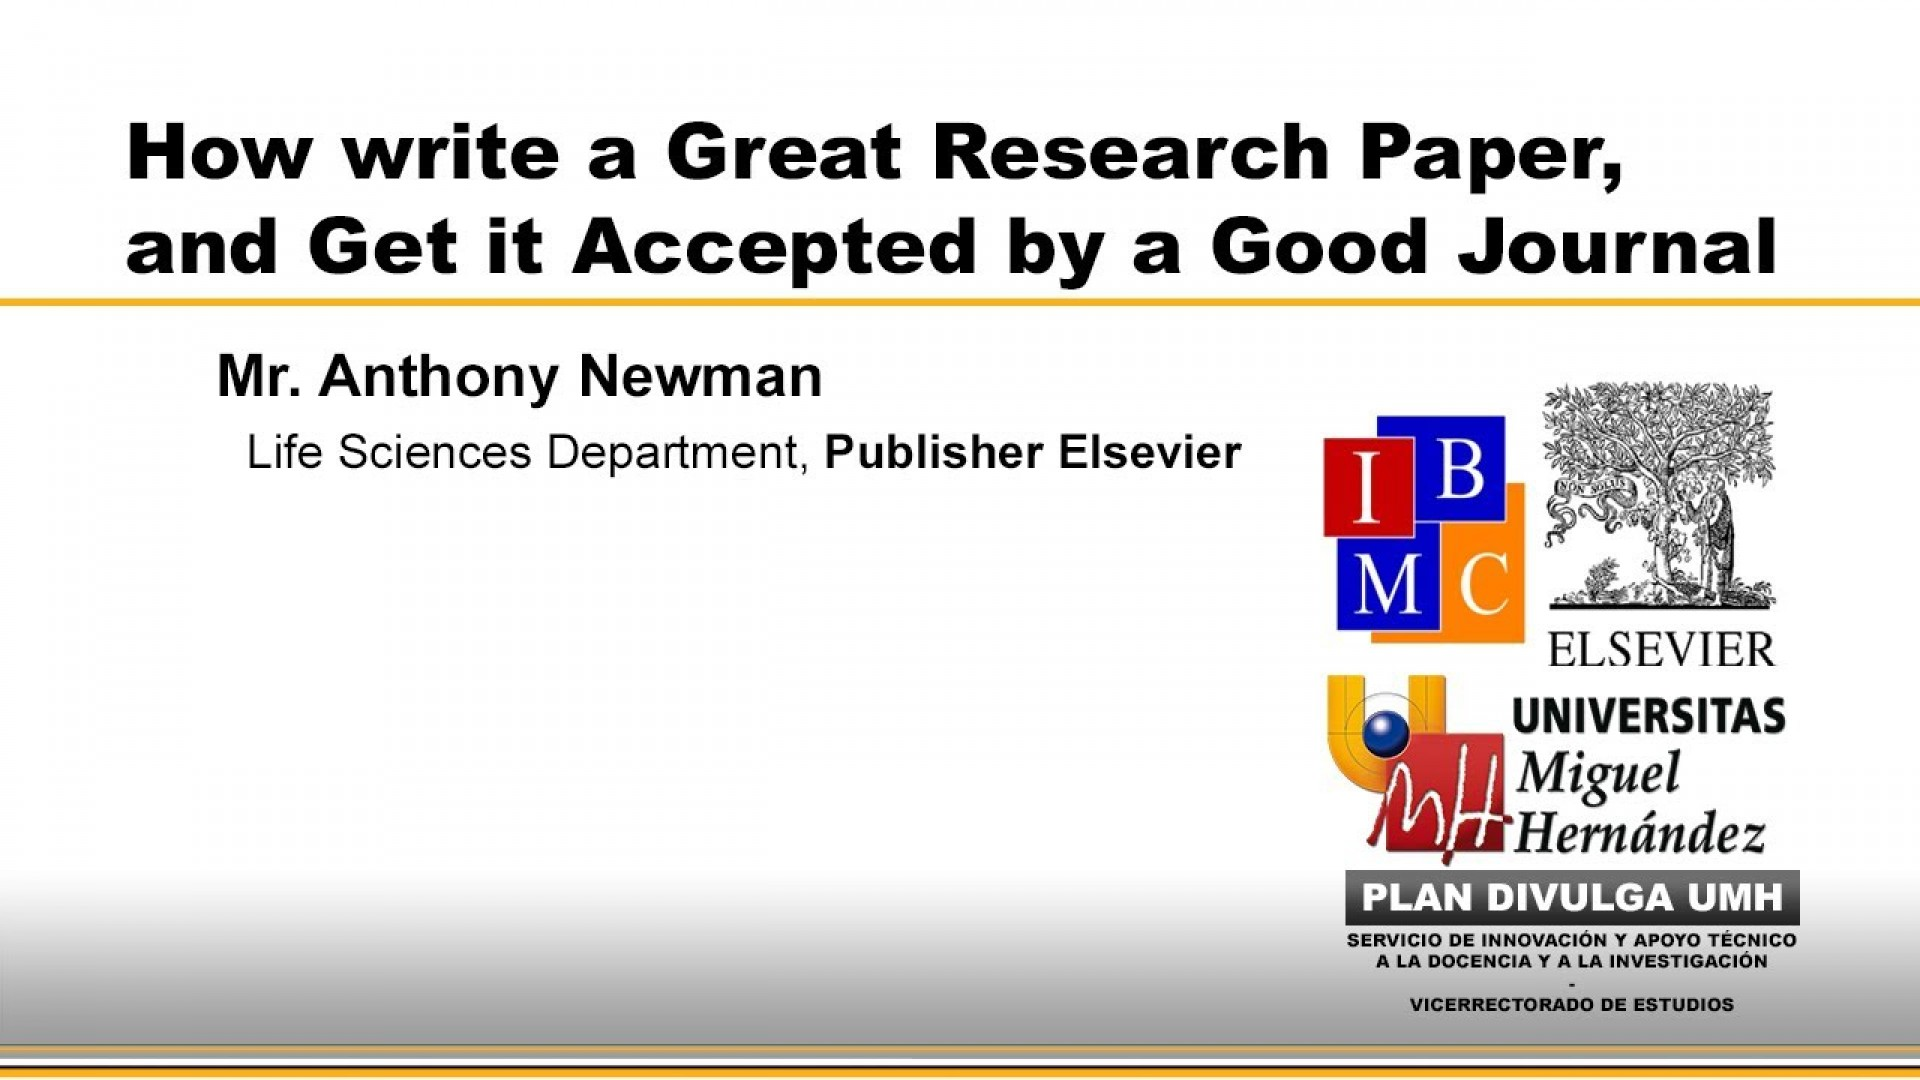 003 Research Paper Maxresdefault How To Write Good Remarkable A Youtube In Apa Great 1920